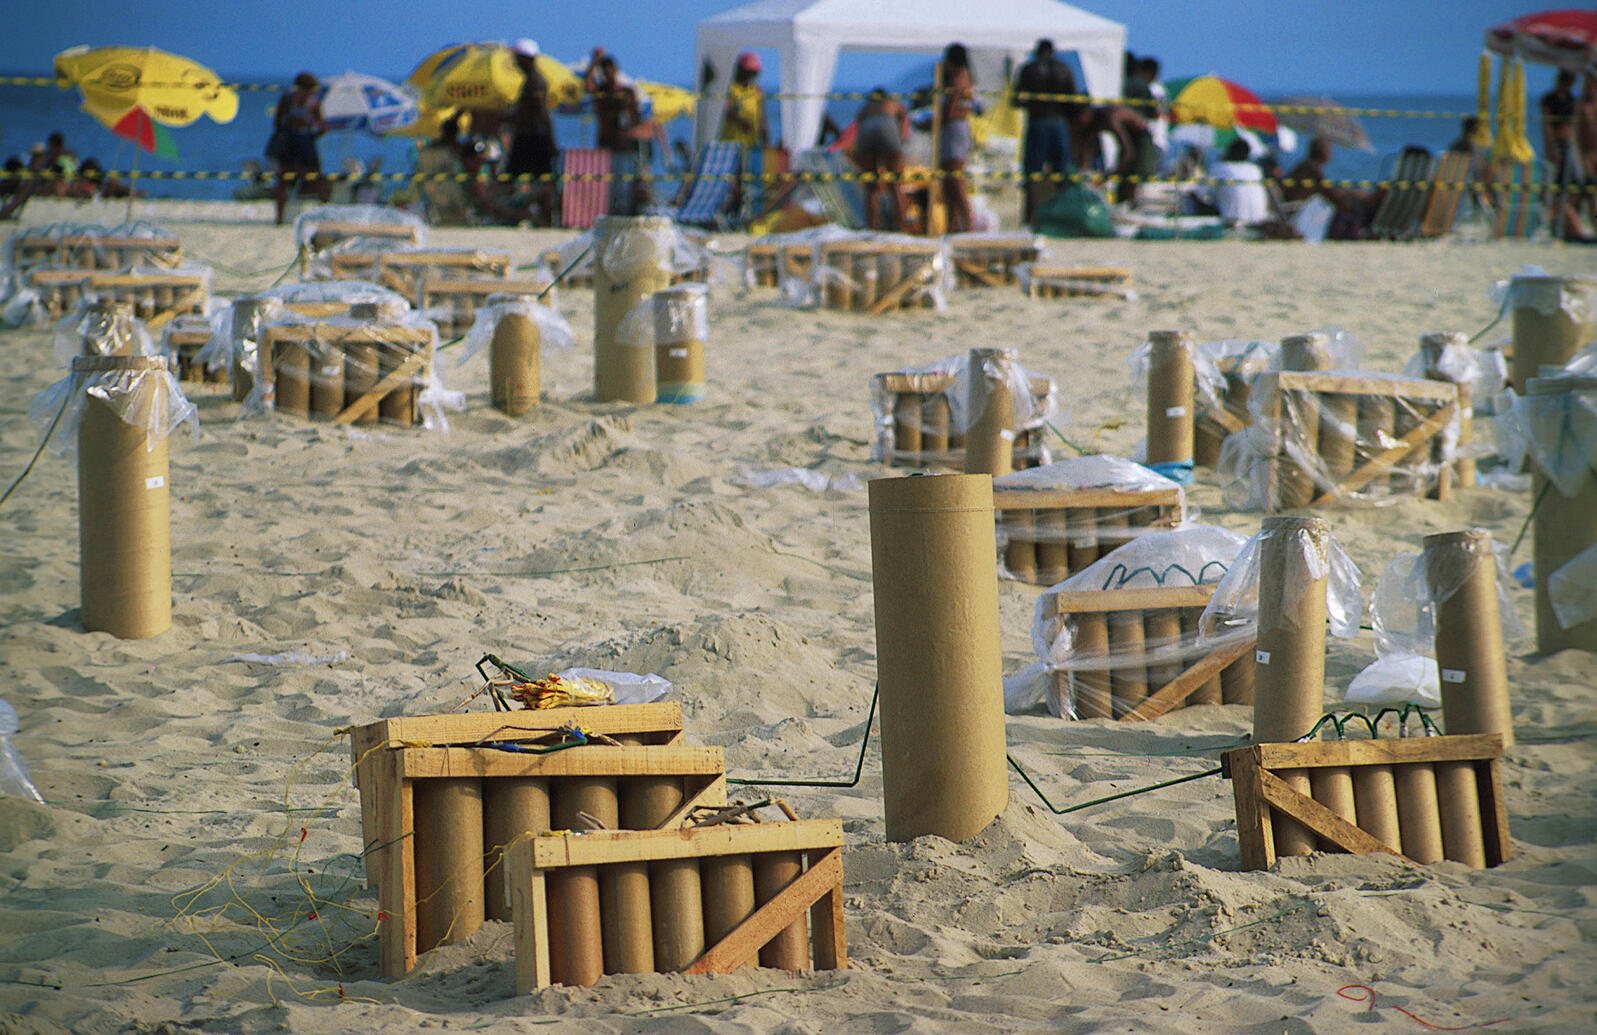 Fireworks being prepped for a show on the beach. Caro Strasnik/Alamy